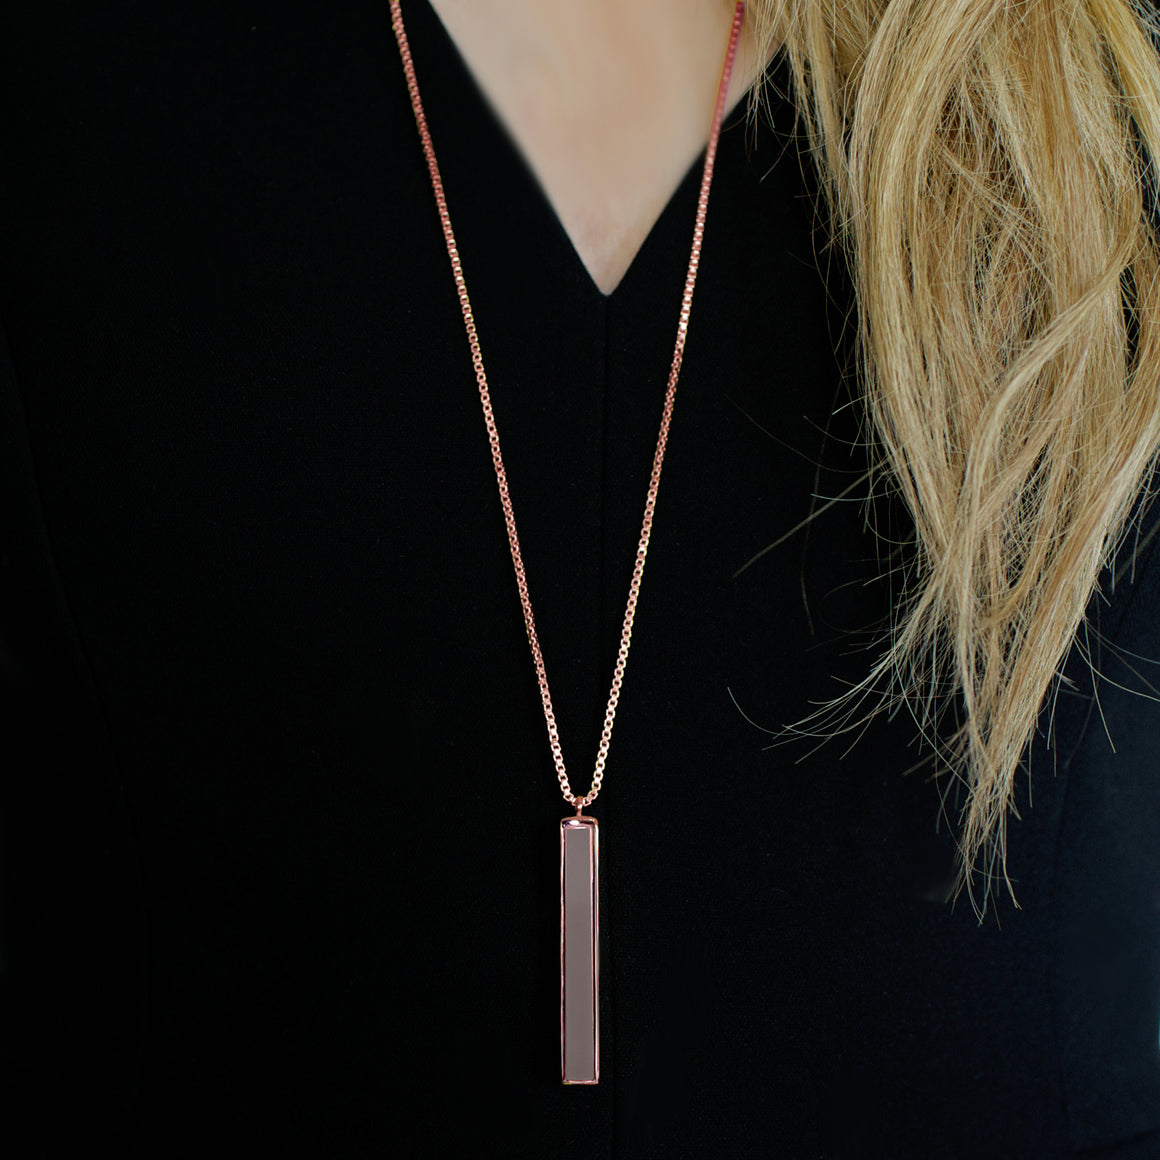 JOY REVERSIBLE NECKLACE - SLATE GREY AGATE & ROSE GOLD